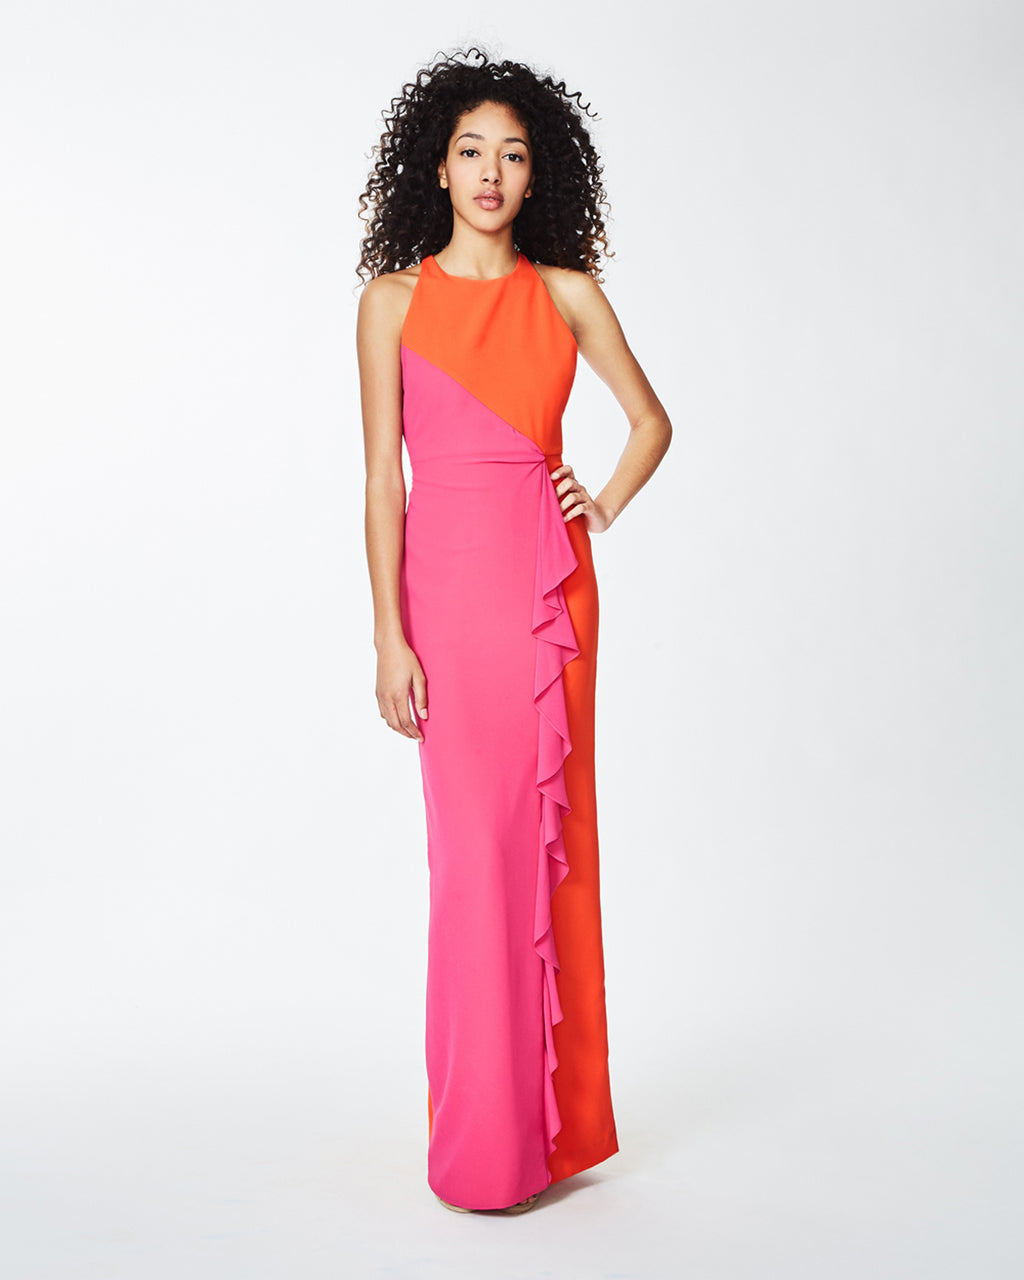 BQ10262 - X-BACK RUFFLE GOWN - dresses - long - Contrasting orange and pink bring a bright and vibrant vibe to this luxe gown. An open, strappy back add a trendy and femme touch to this gown. Finished with a ruffle accent and concealed zipper. Fully lined. Final Sale